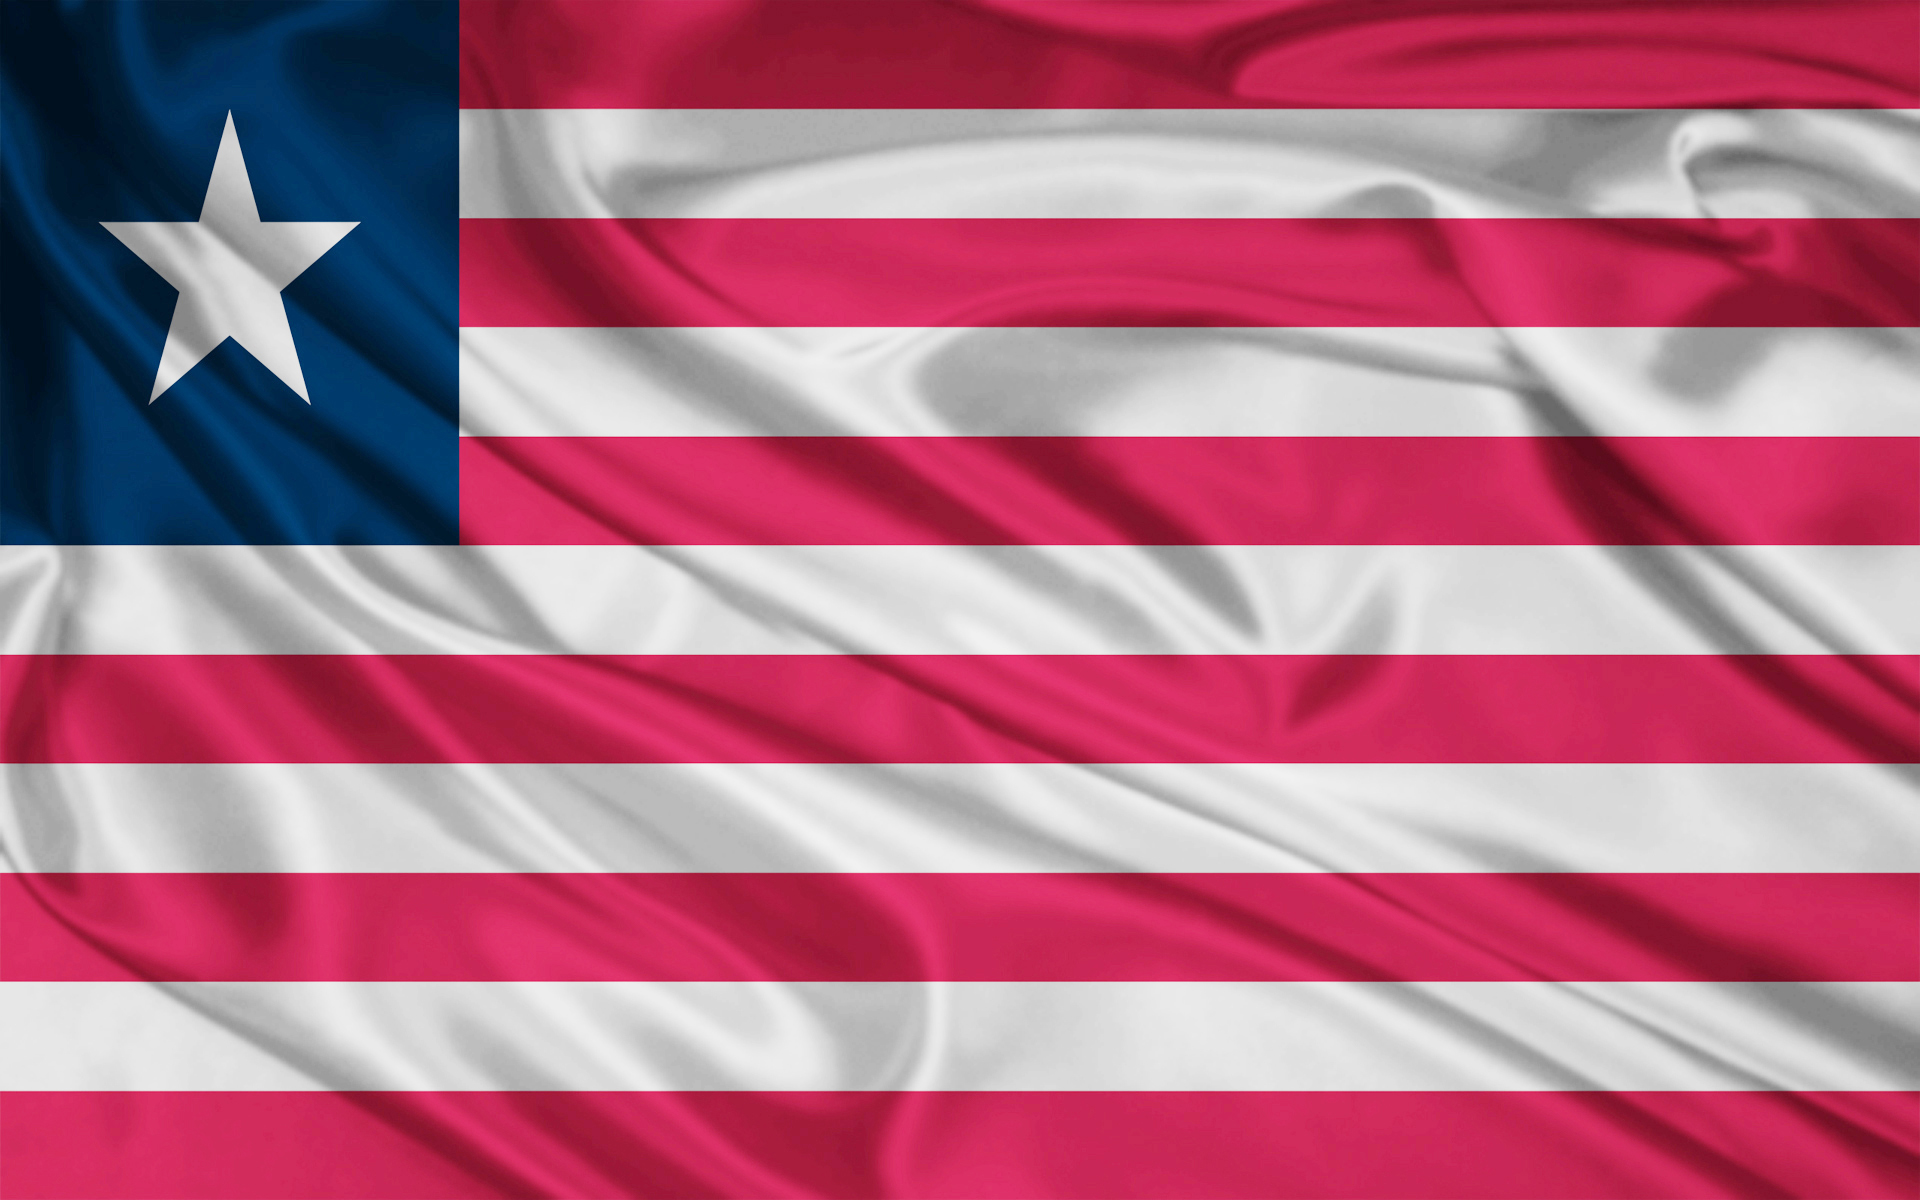 Nature Hd Wallpapers For Iphone Liberia Flag Wallpapers Liberia Flag Stock Photos